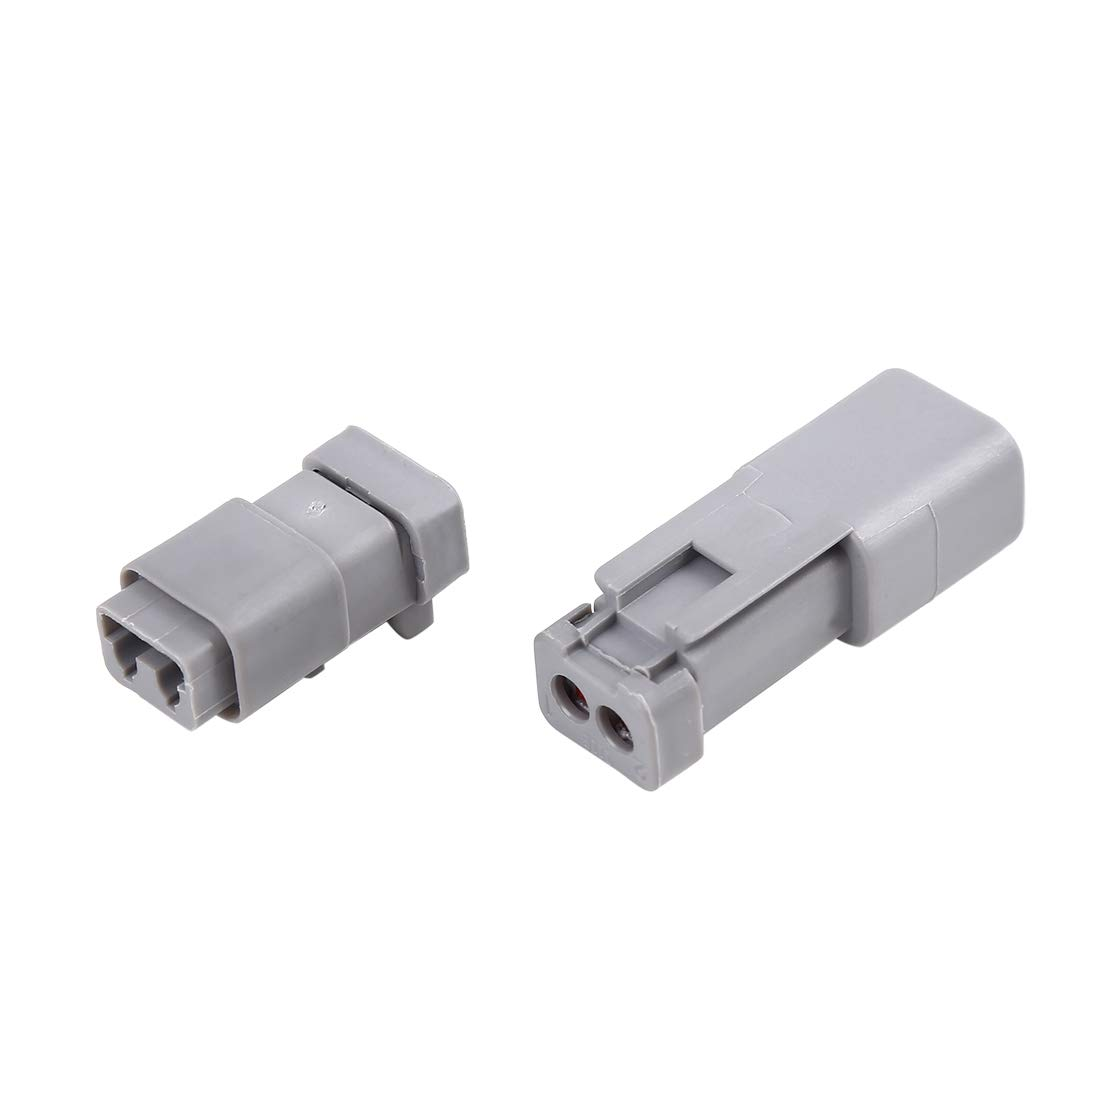 X AUTOHAUX 2 Pins Way Car Waterproof Connector Terminal DT04-2P DT06-2S Set